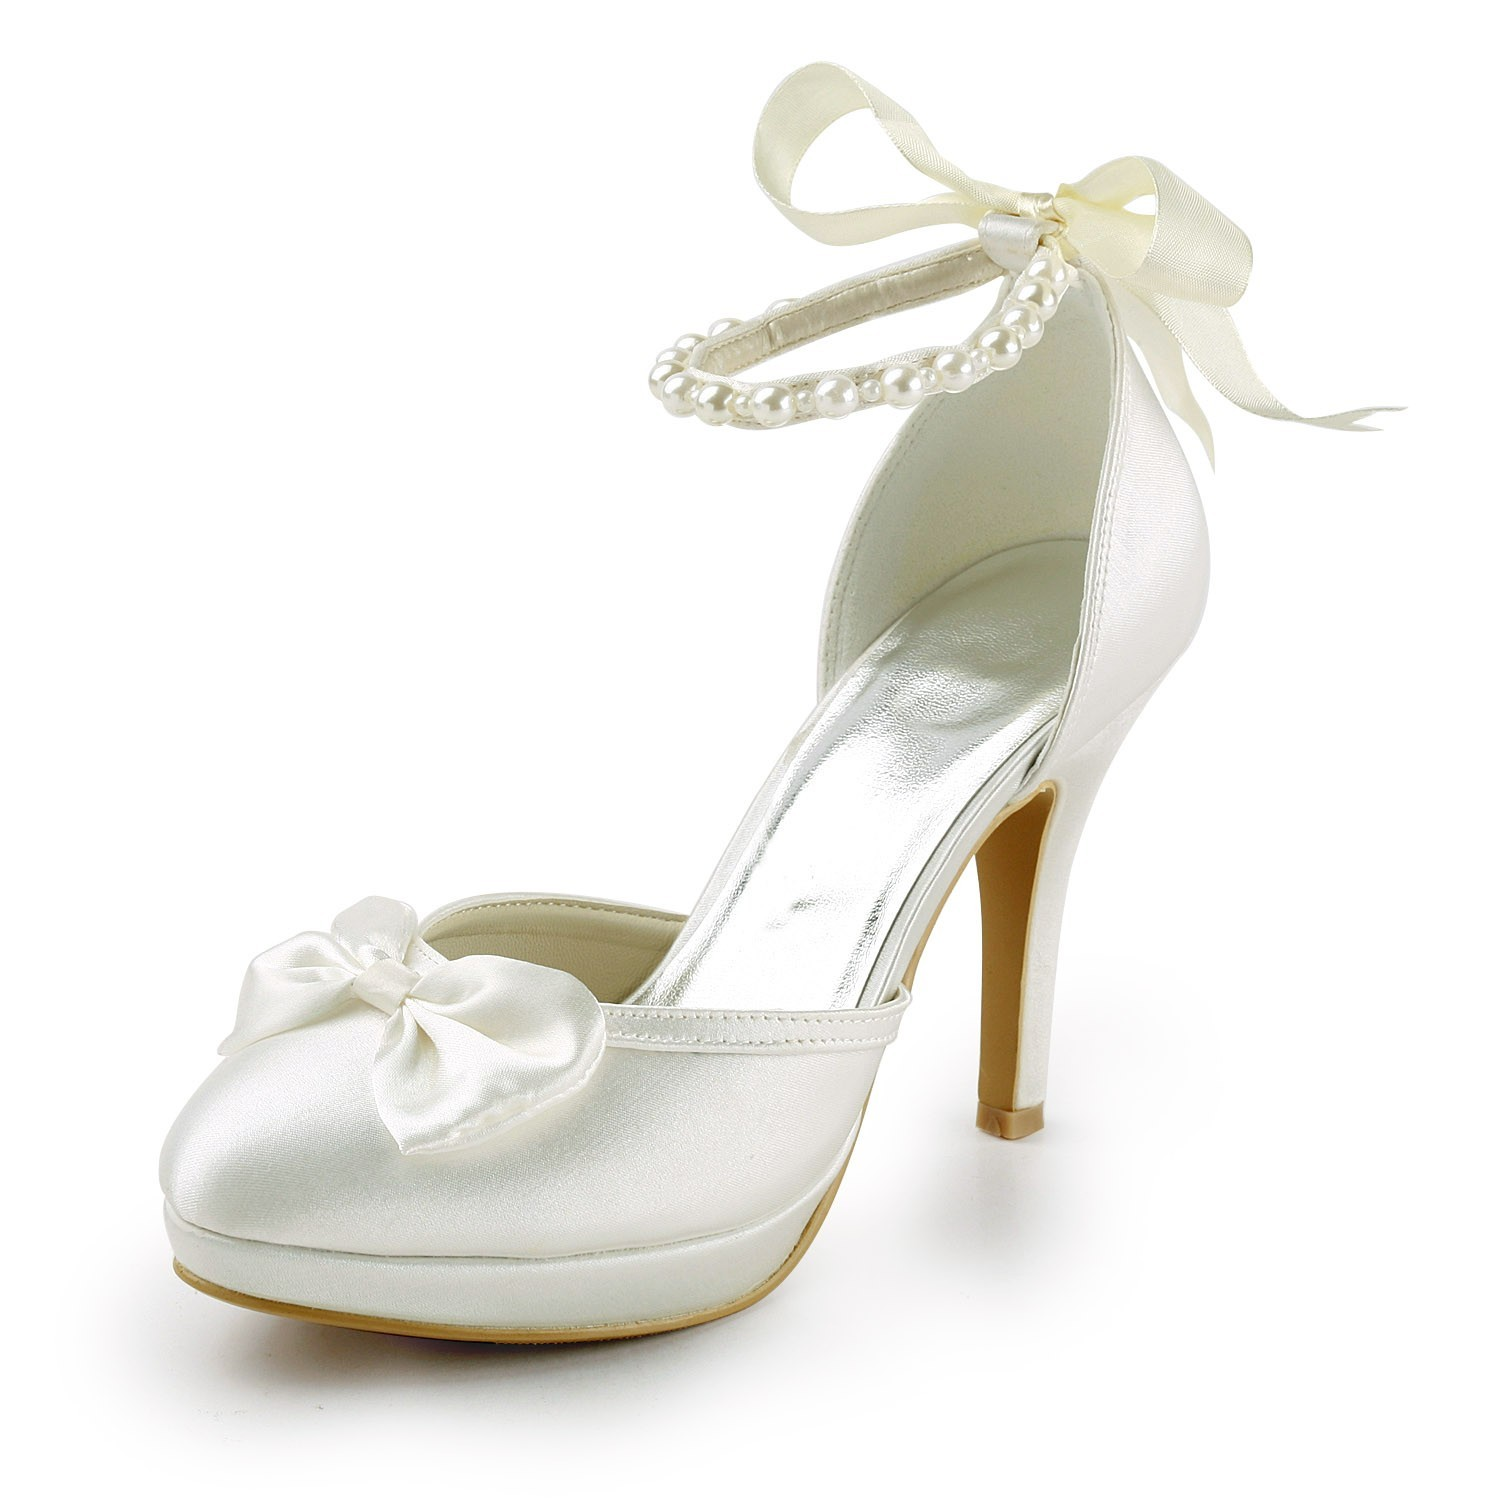 c0d57315169 satin spool heel closed toe platform pumps wedding shoes with bowknot imitation pearl ribbon tie.jpg